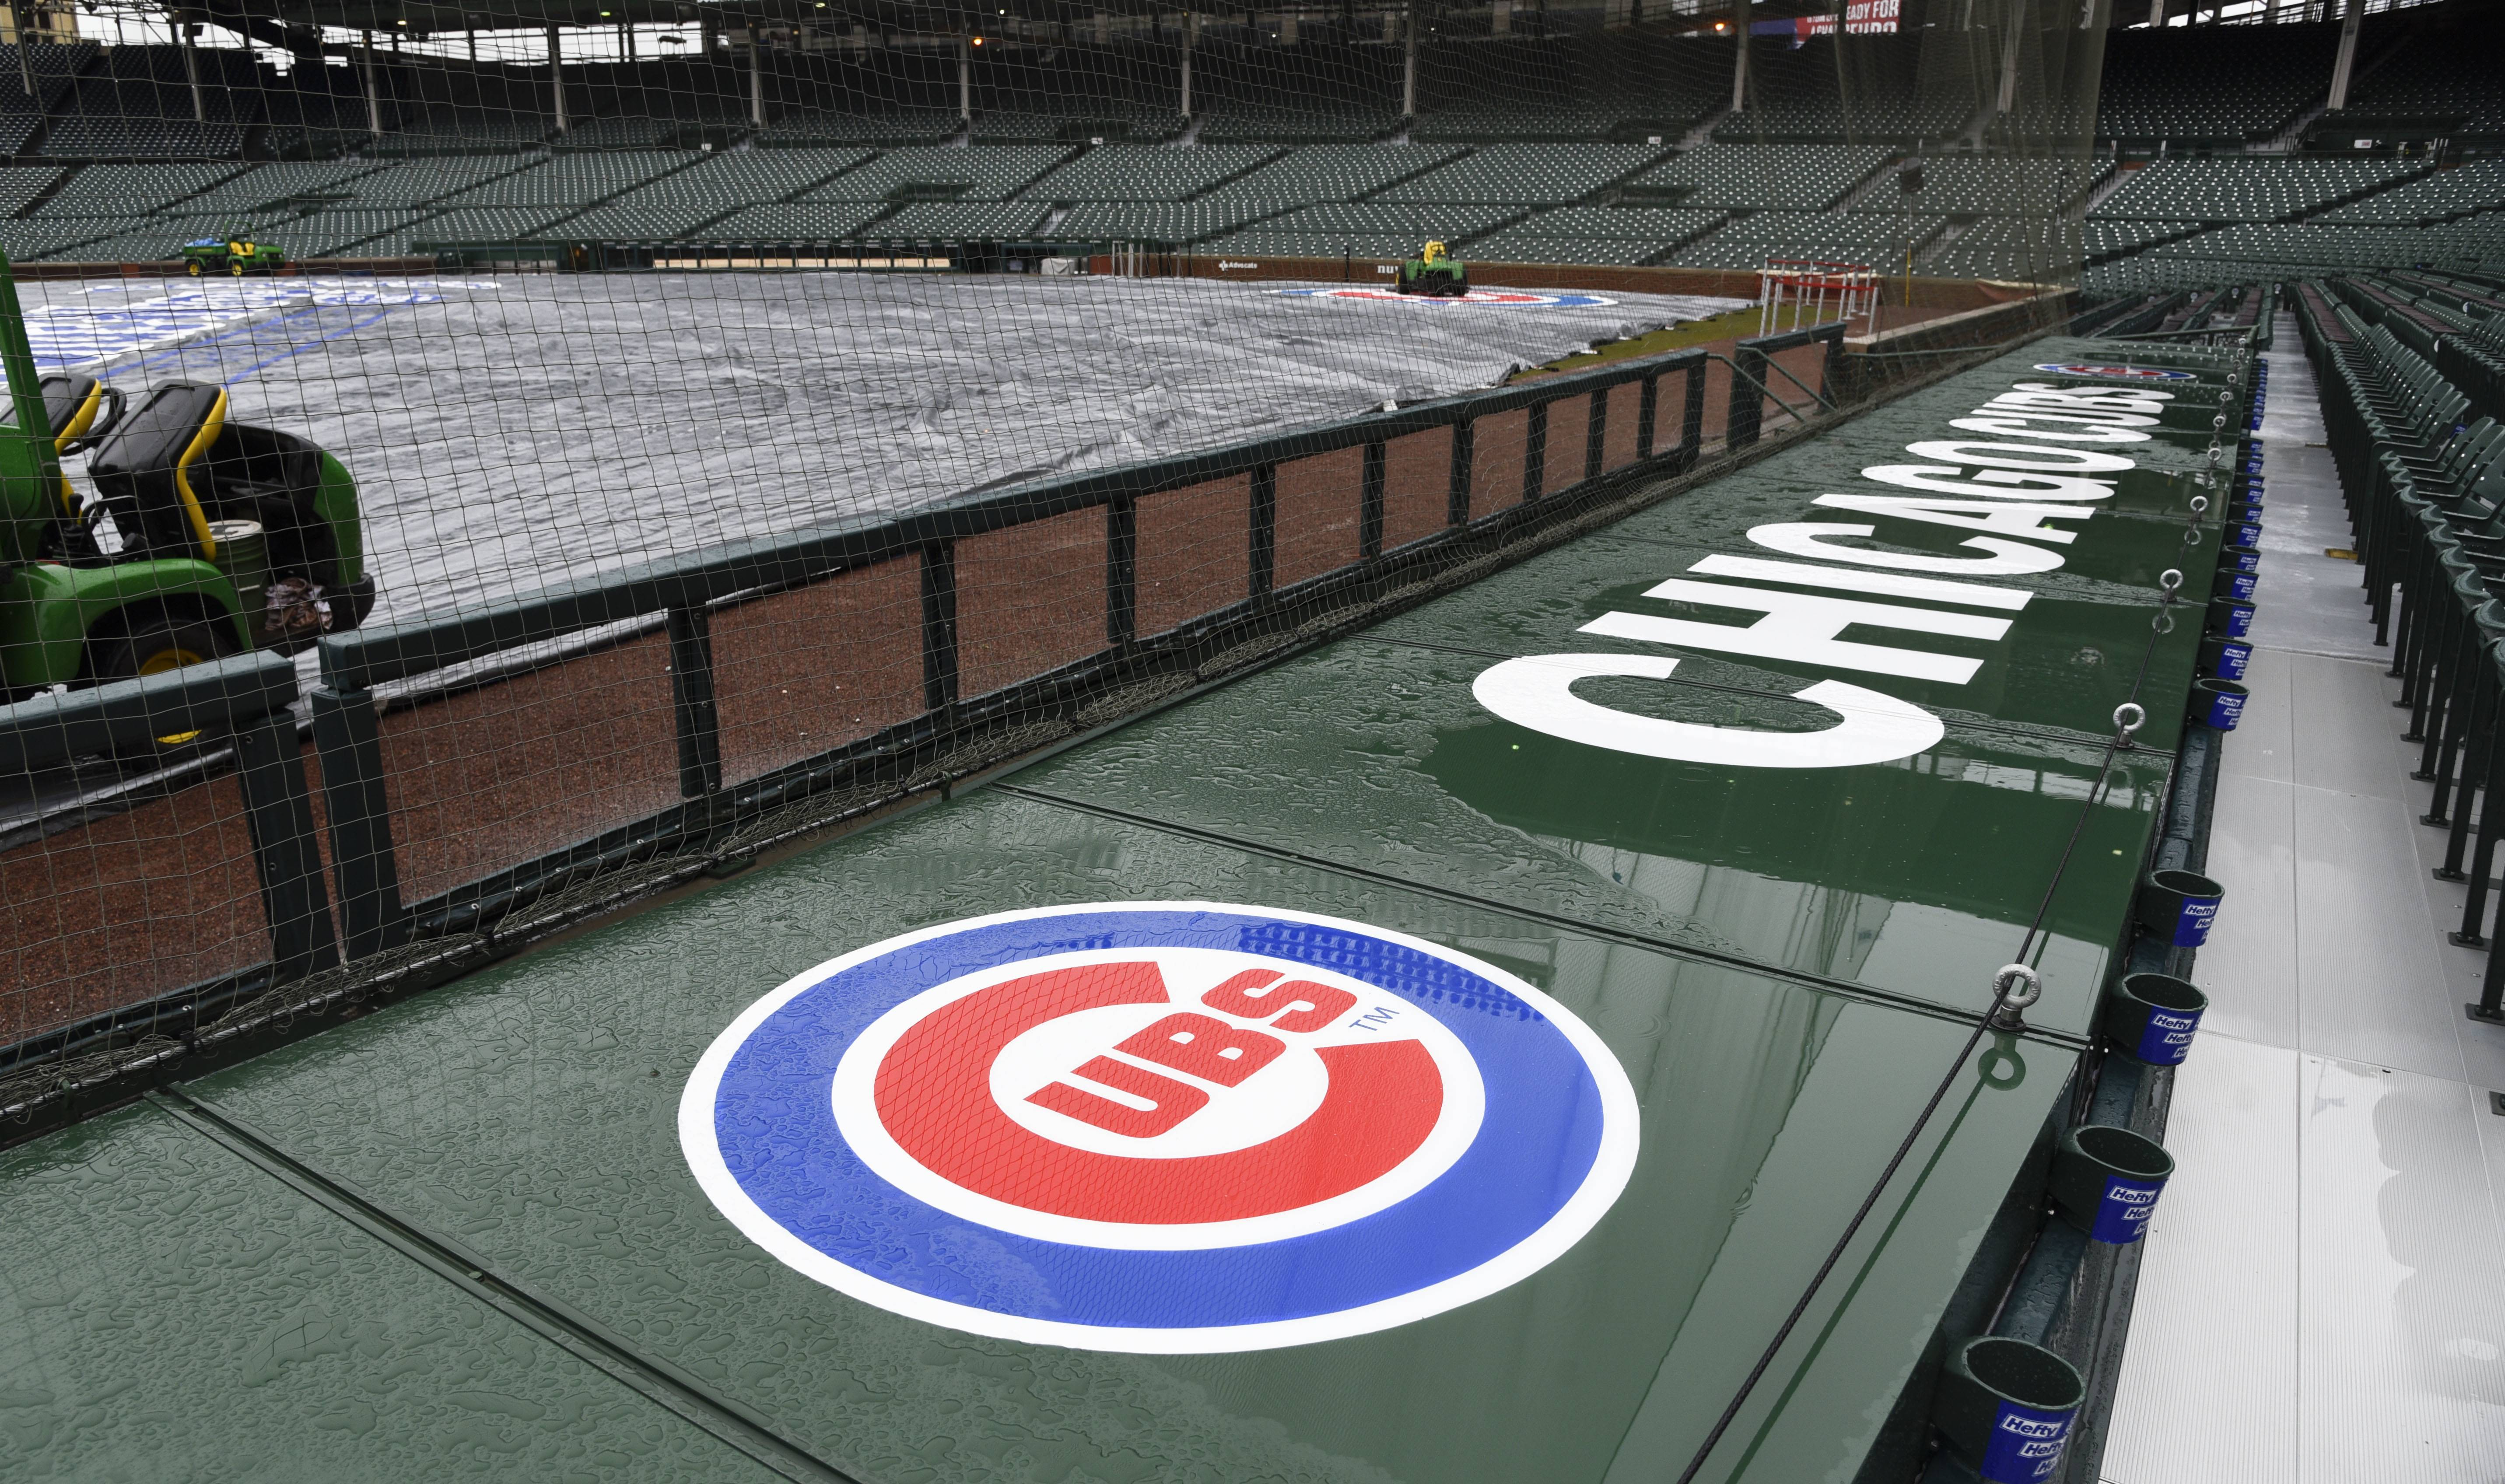 For the second day in a row, there won't be any baseball at Wrigley Field. Sunday's game between the Cubs and Atlanta was postponed, and now Monday's game against the Cardinals also was postponed due to cold weather.